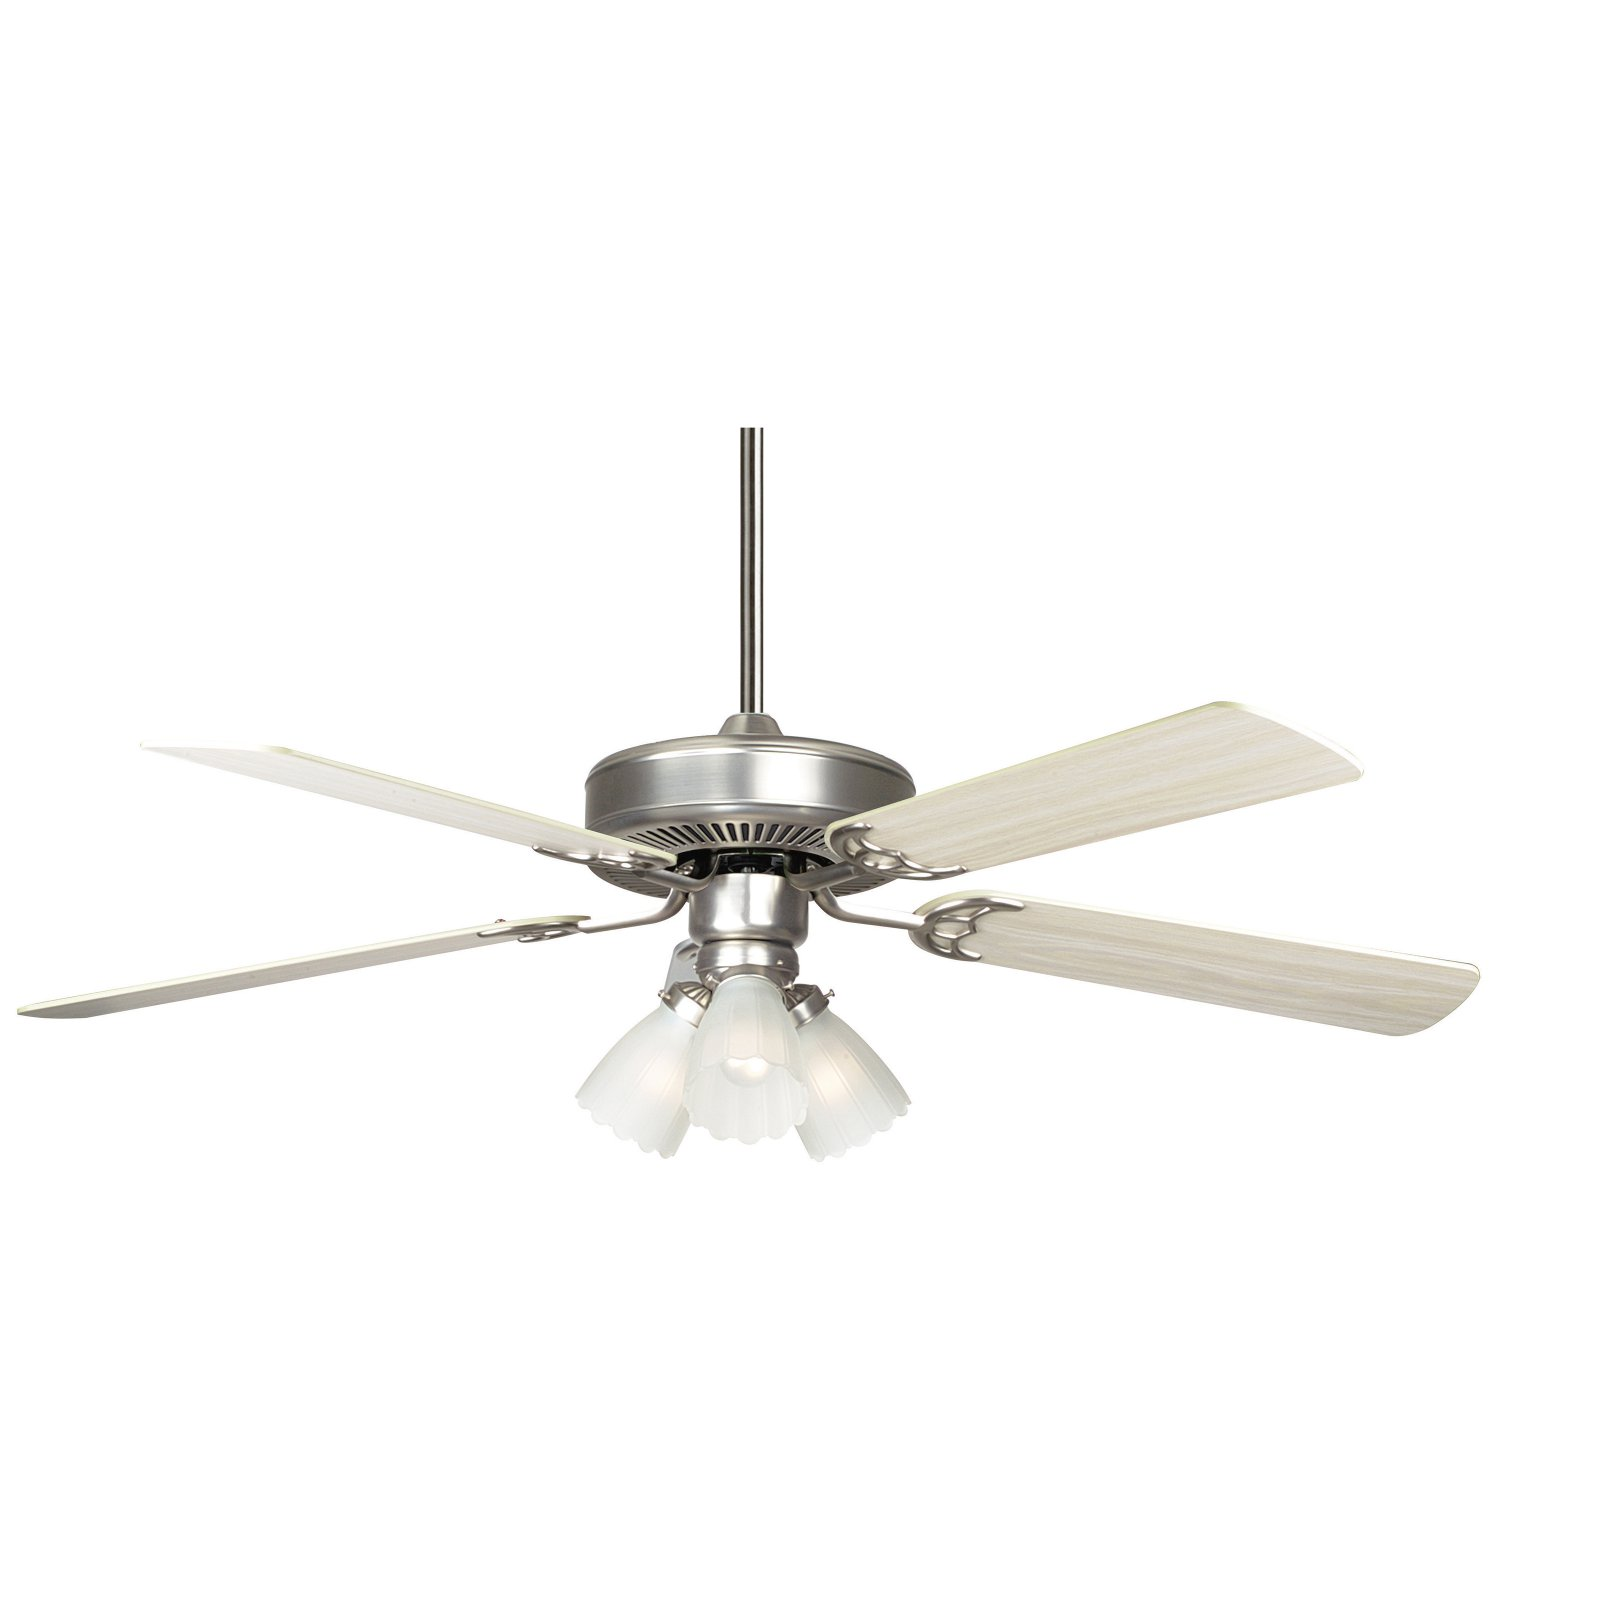 """Concord 52HA5E Home Air 52"""" 5 Blade Indoor Ceiling Fan with Light Kit, Downrod, by Supplier Generic"""